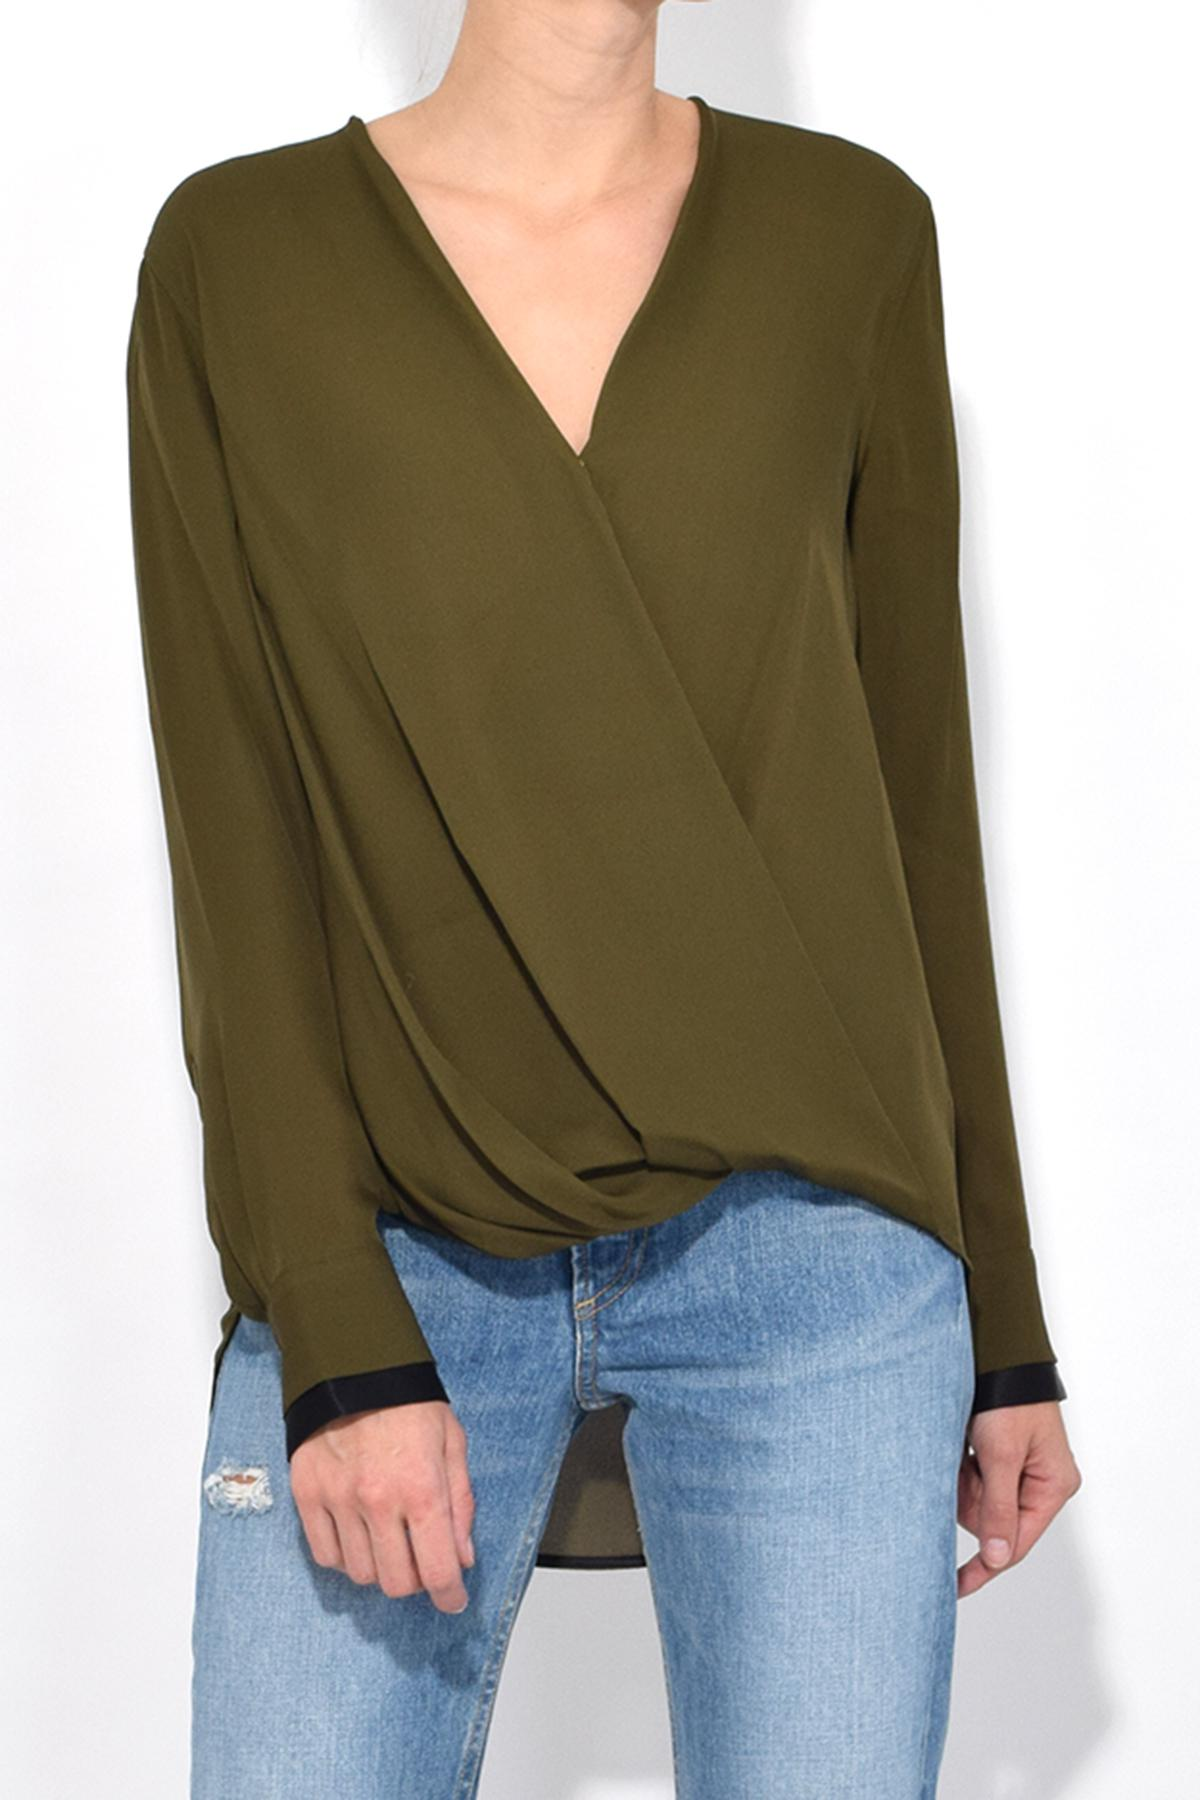 7b27f531f69d69 Rag & Bone Victor Blouse In Dark Olive in Green - Lyst